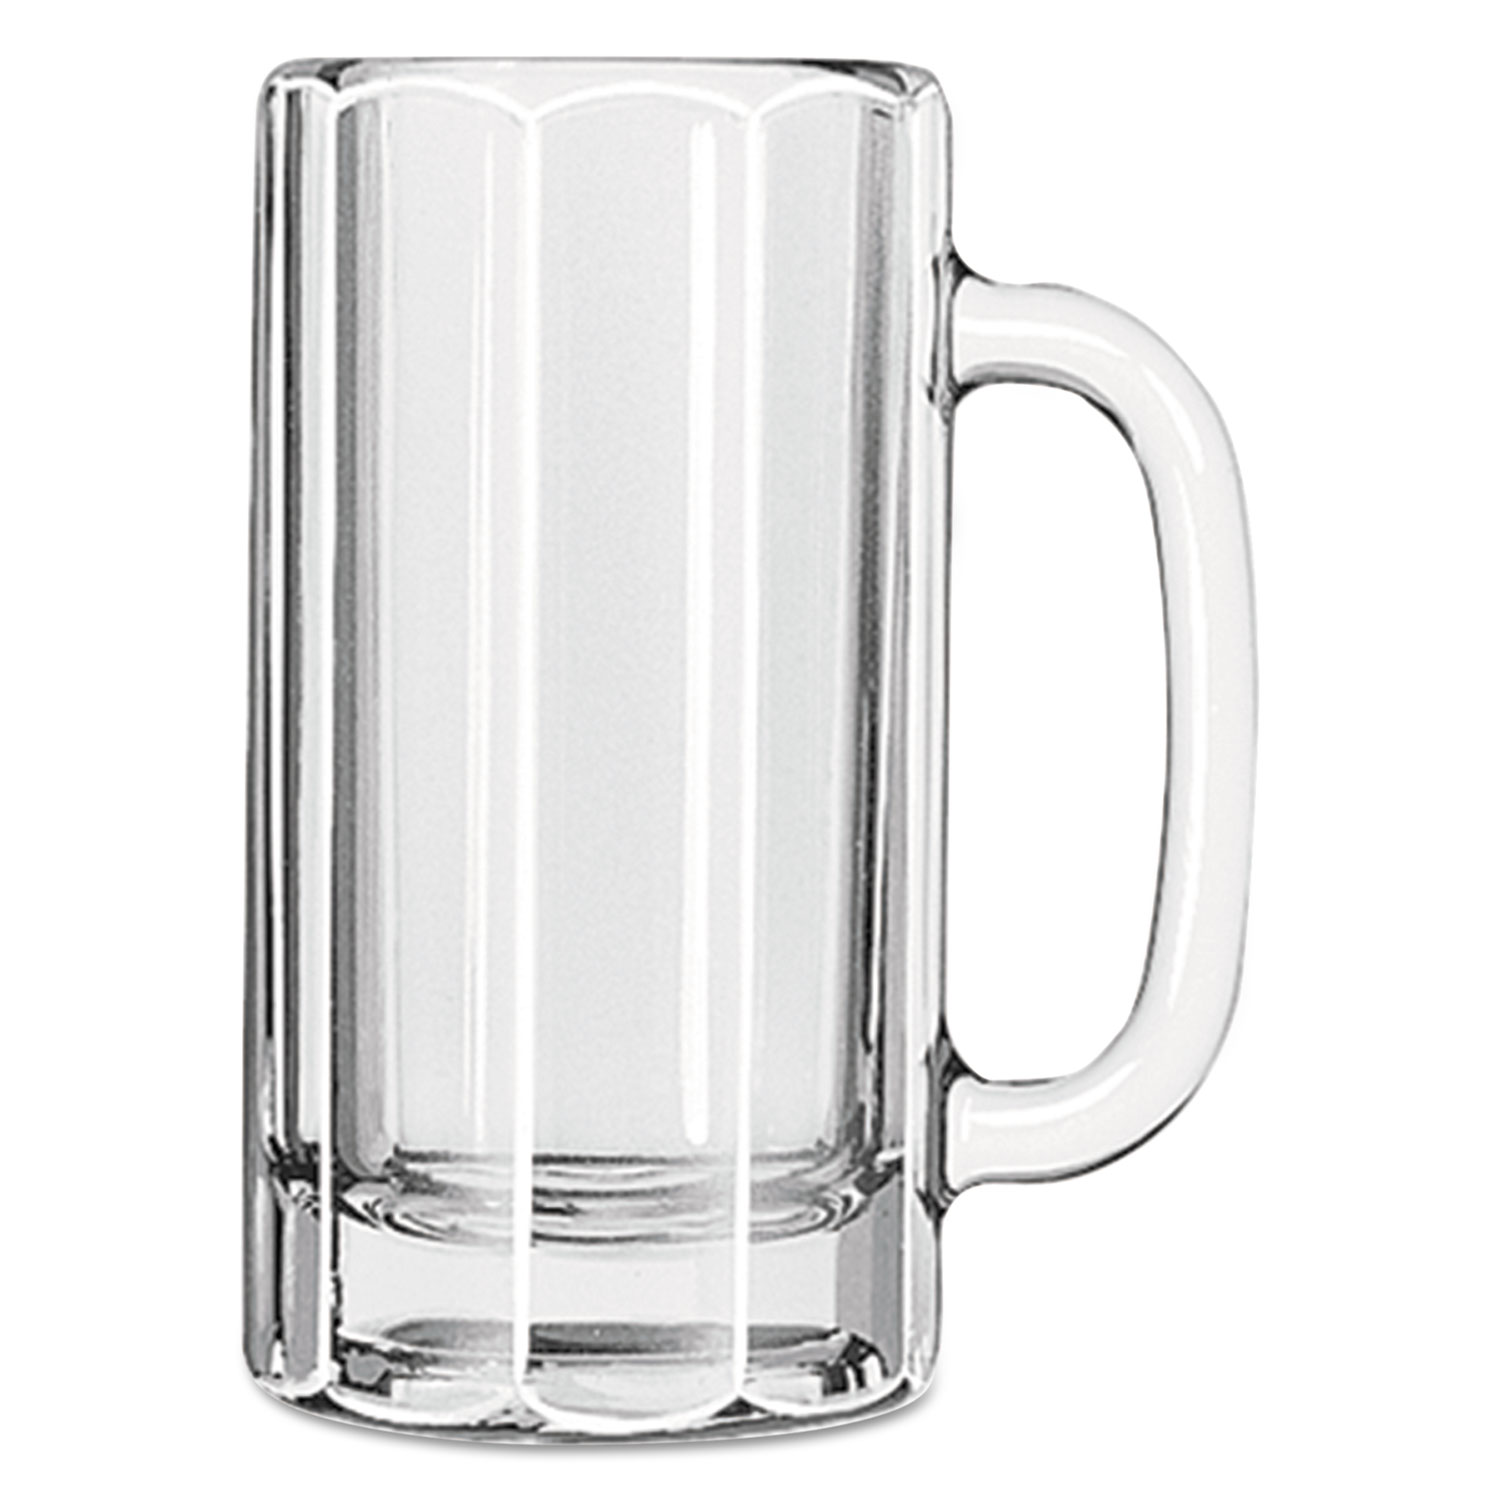 GLASSES,MUG,12OZ,PANLD,12